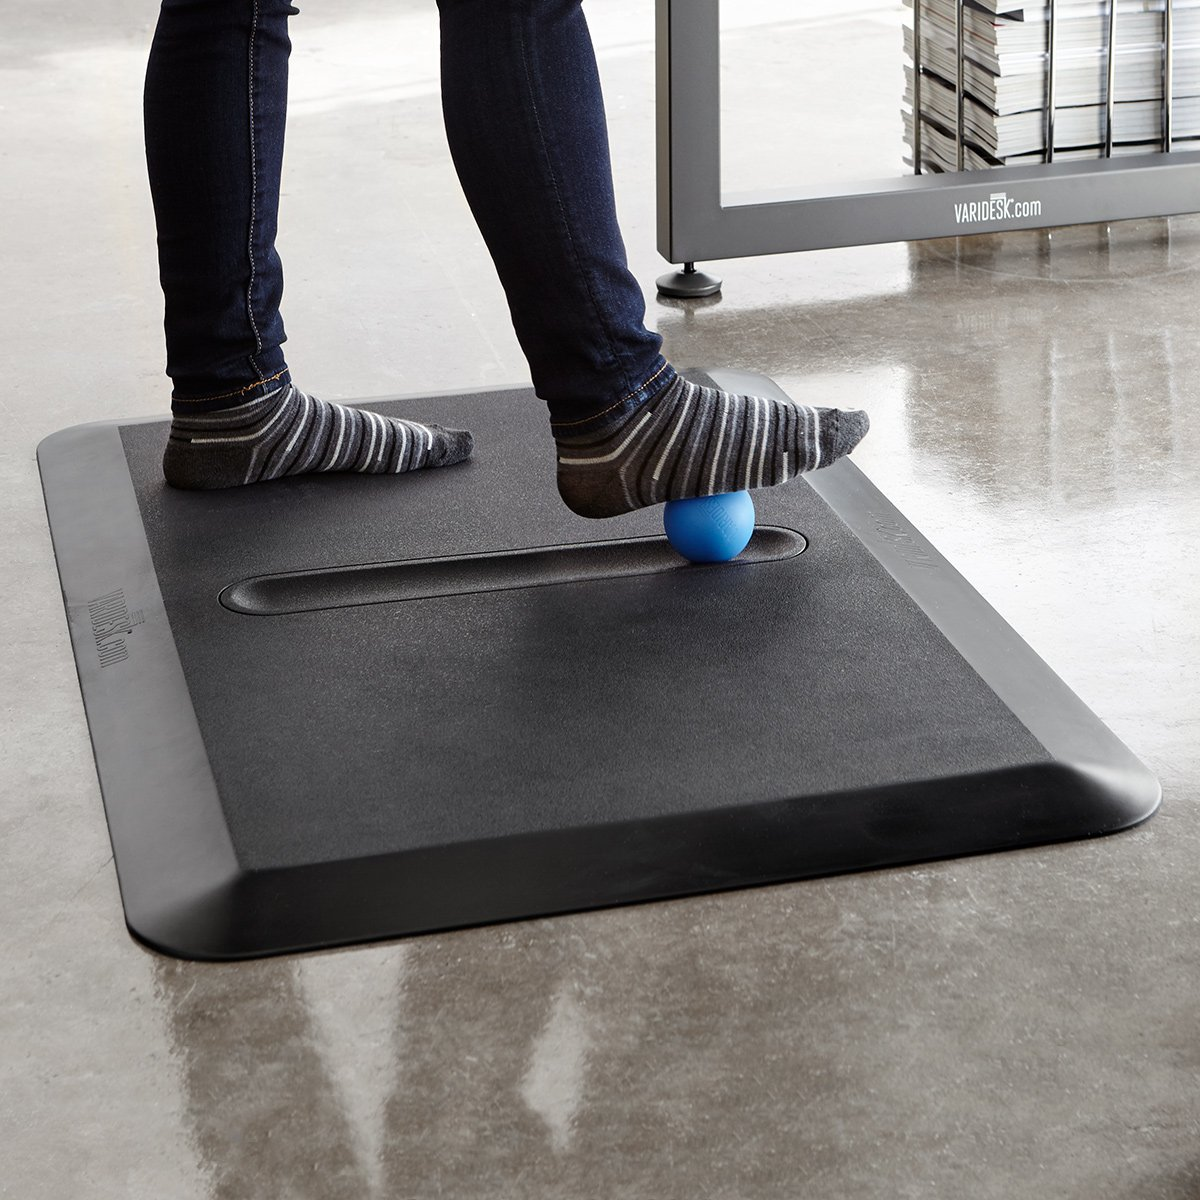 VARIDESK - Standing Desk Anti-Fatigue Comfort Floor Mat – ActiveMat Groove